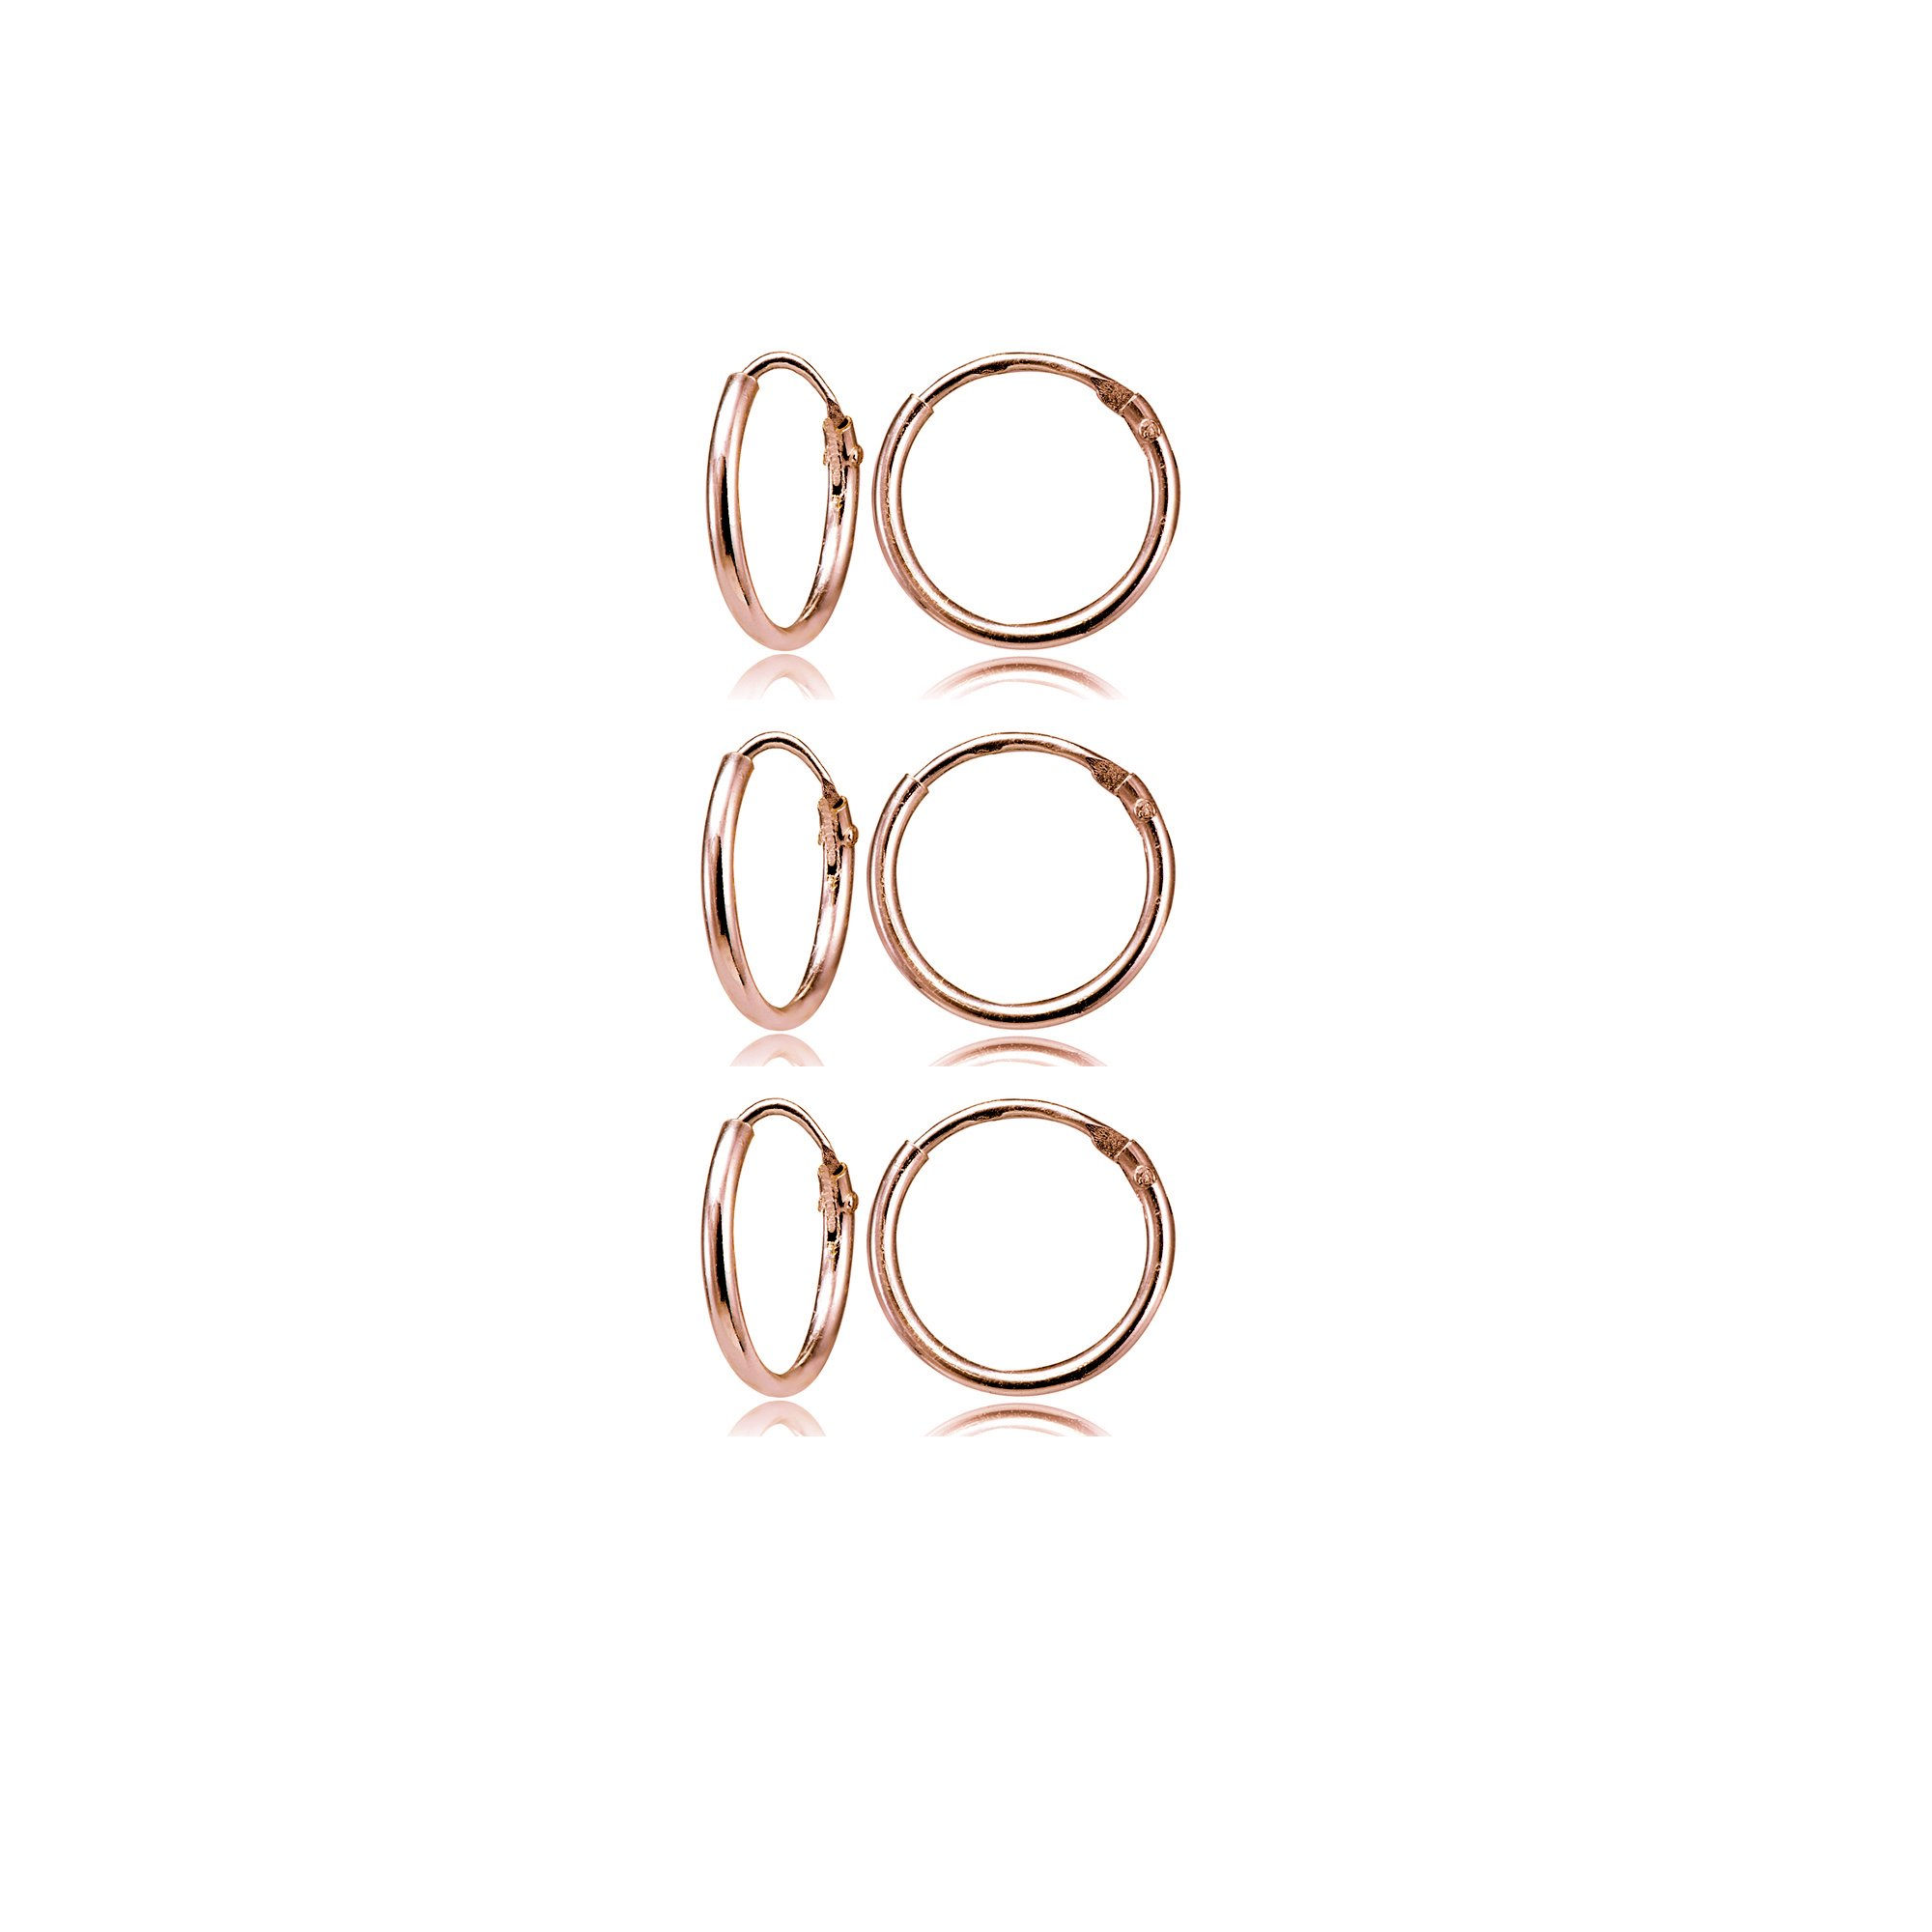 Rose Gold Flashed Sterling Silver Small Endless 10mm Round Unisex Hoop Earrings, Set of 3 Pairs